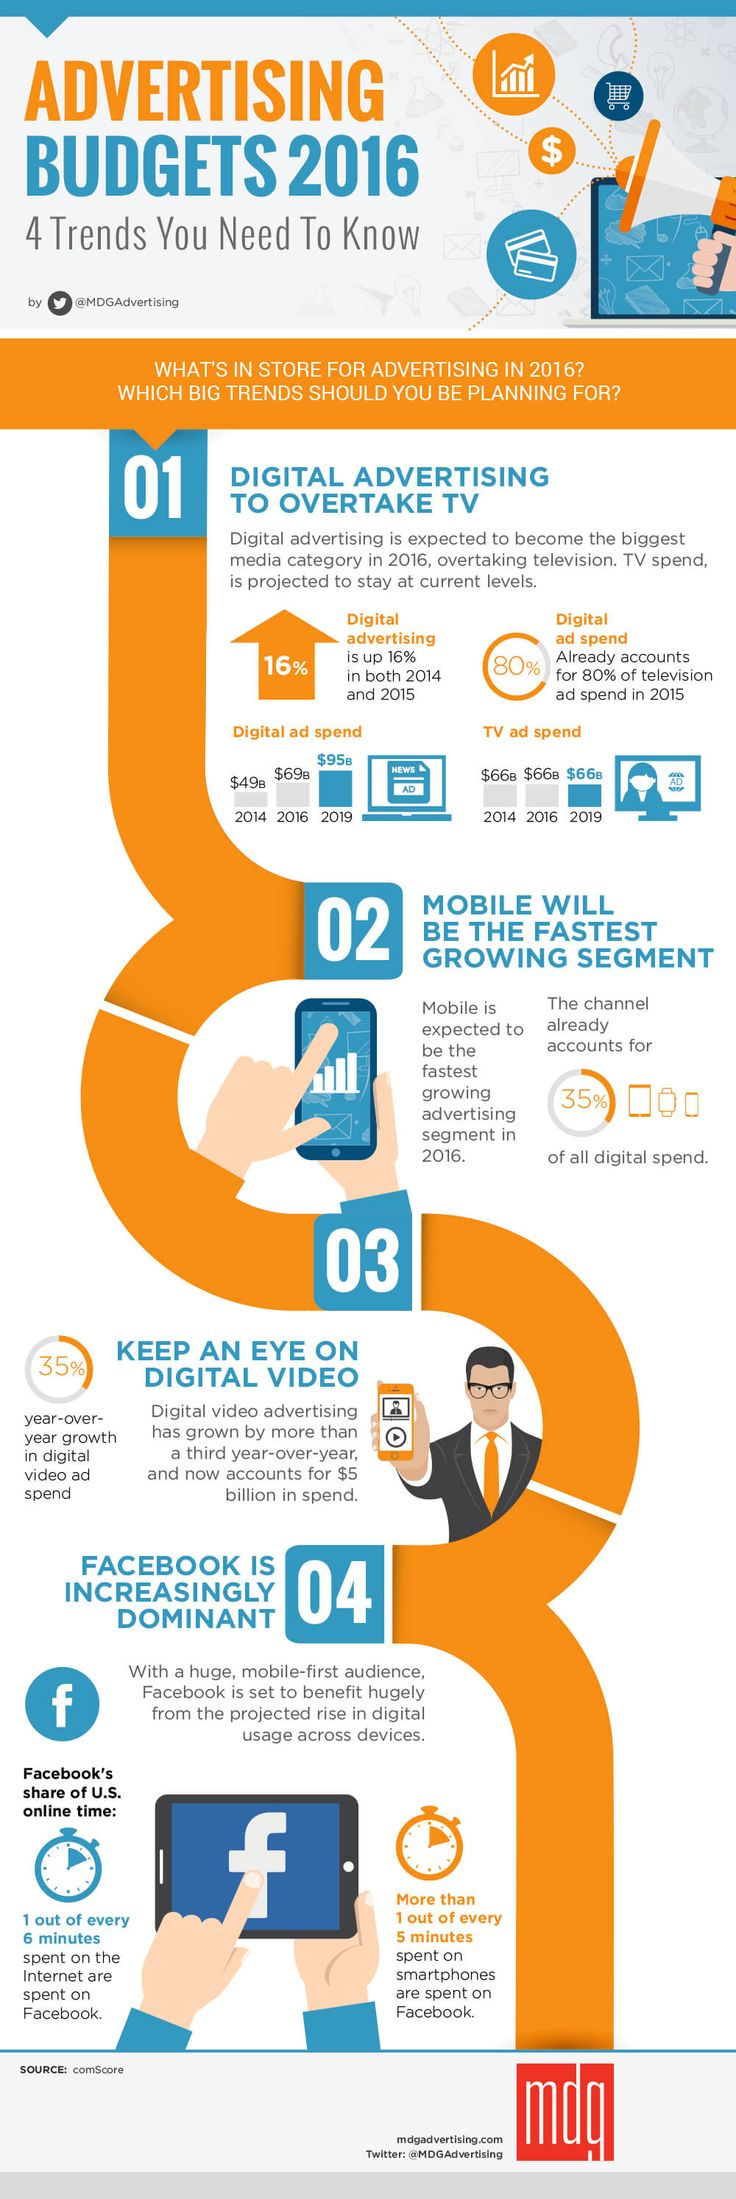 Marketing-Infographic-AdvertisingBudgets-2016.-4-Trends-you-Need-to-Know.-advertising-marketing-b Digital Marketing : Digital Advertising Budgets 2016: 4 Trends You Need To Know - #Infographic